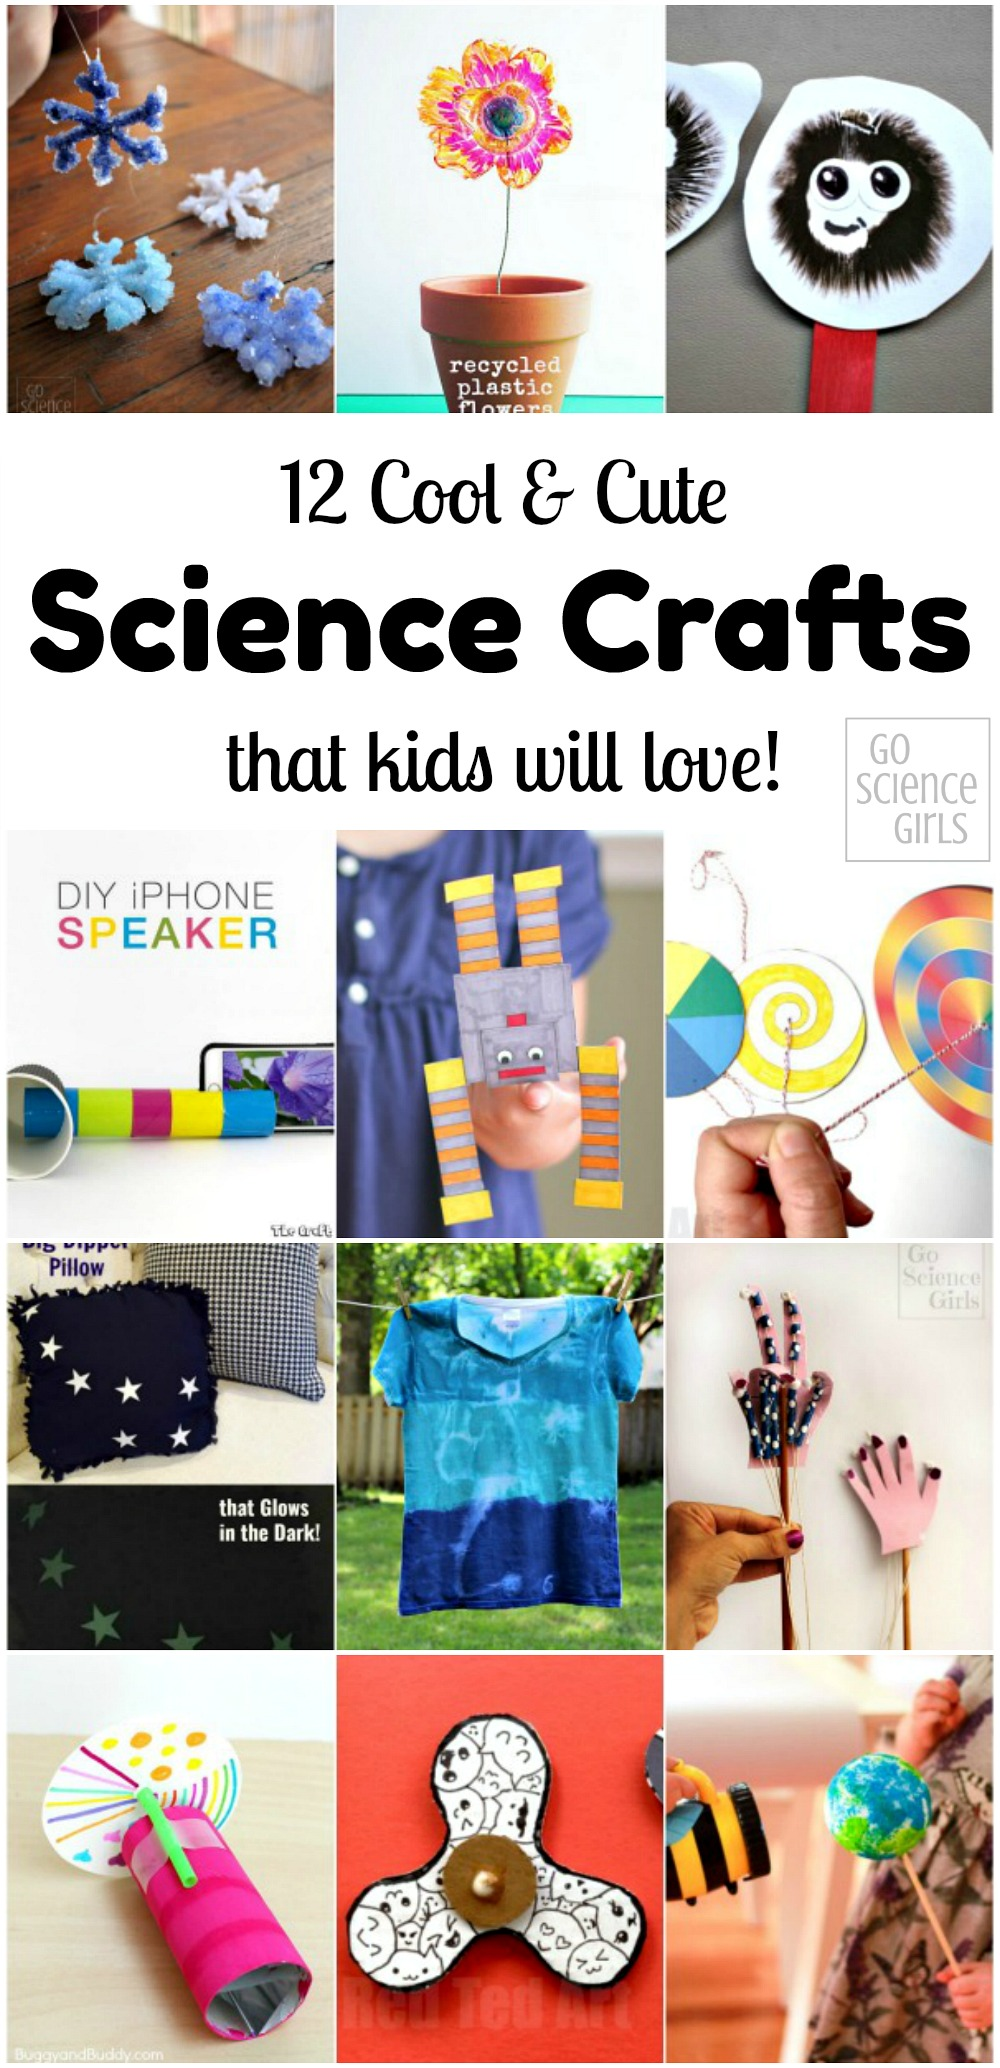 12 Cool and cute science crafts that kids will love! As recommended by Go Science Girls